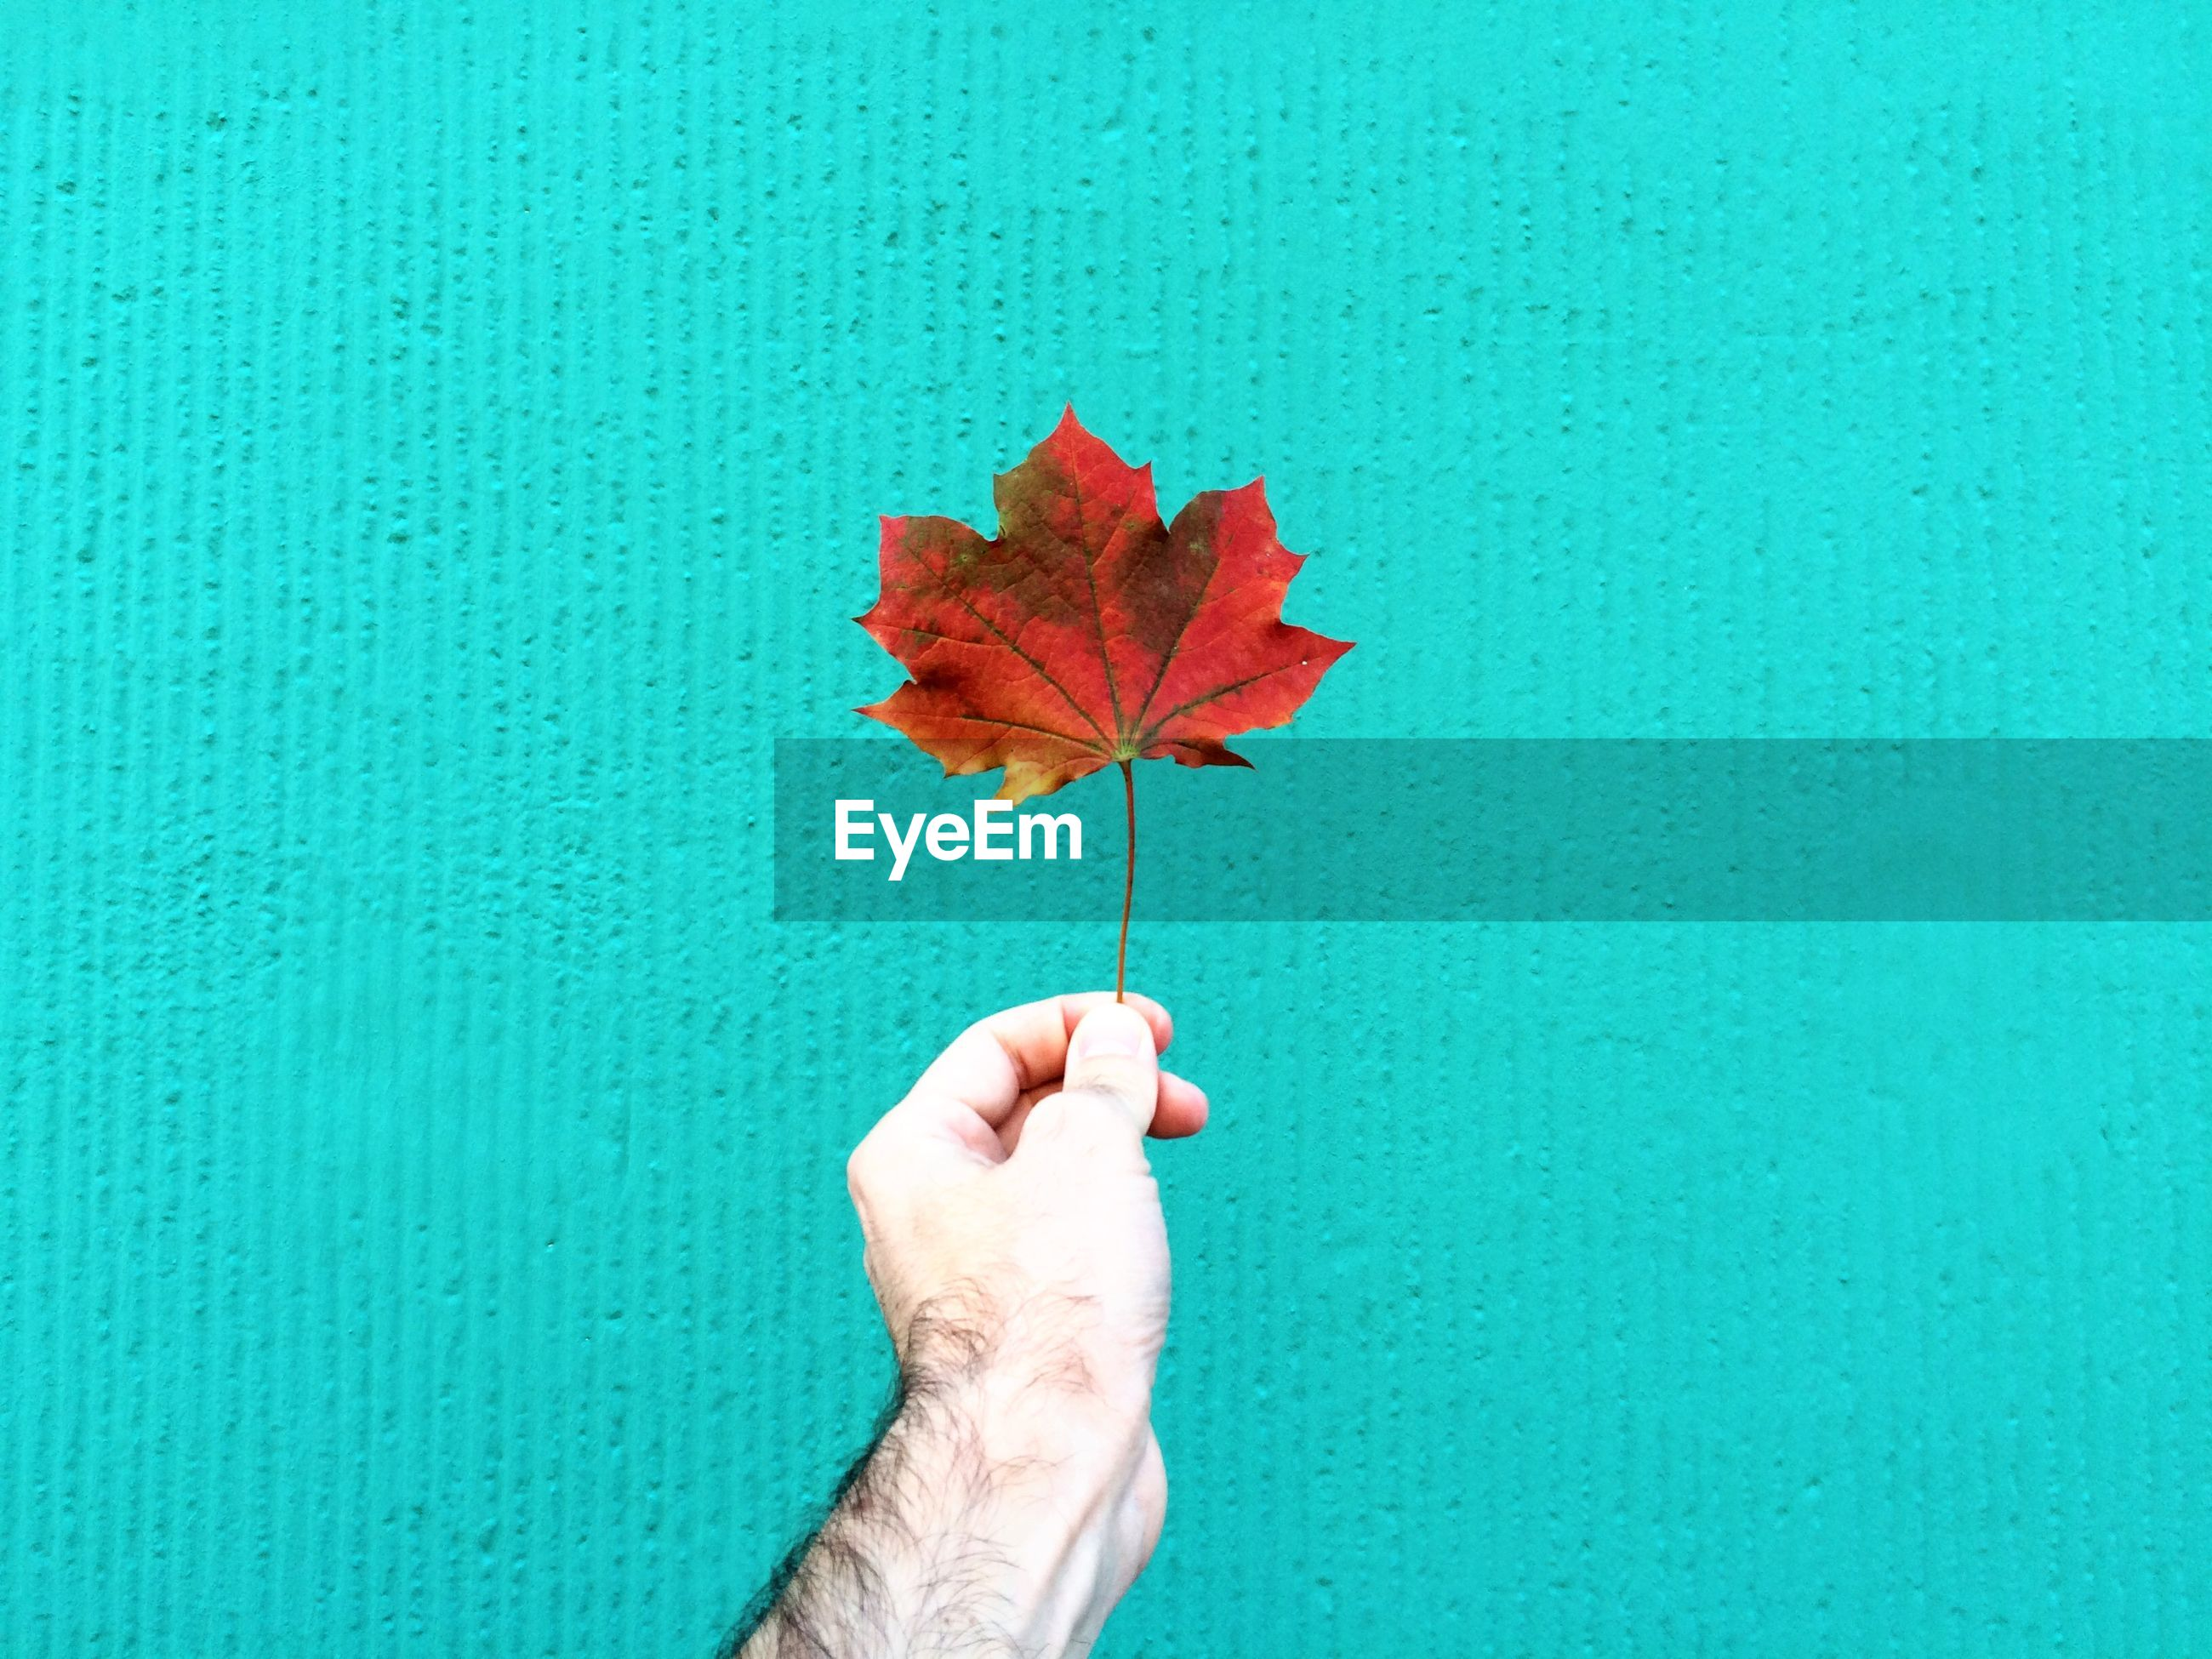 Cropped hand of man holding maple leaf against textured wall